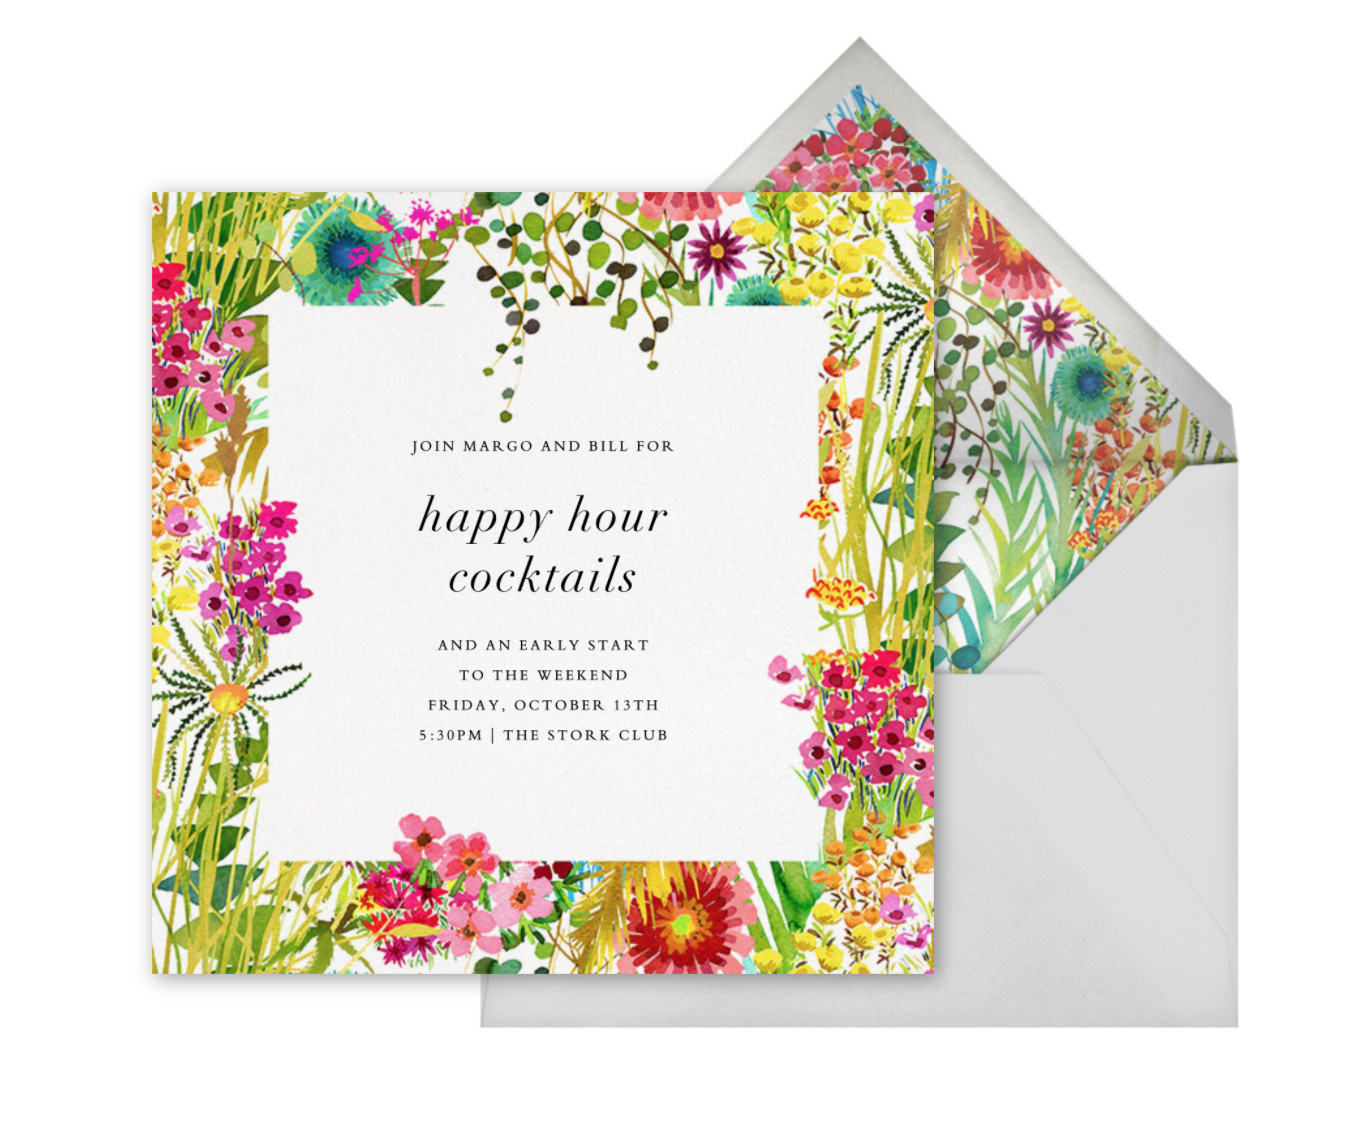 Paperless Post Review: Customized Online Cards and Invitations